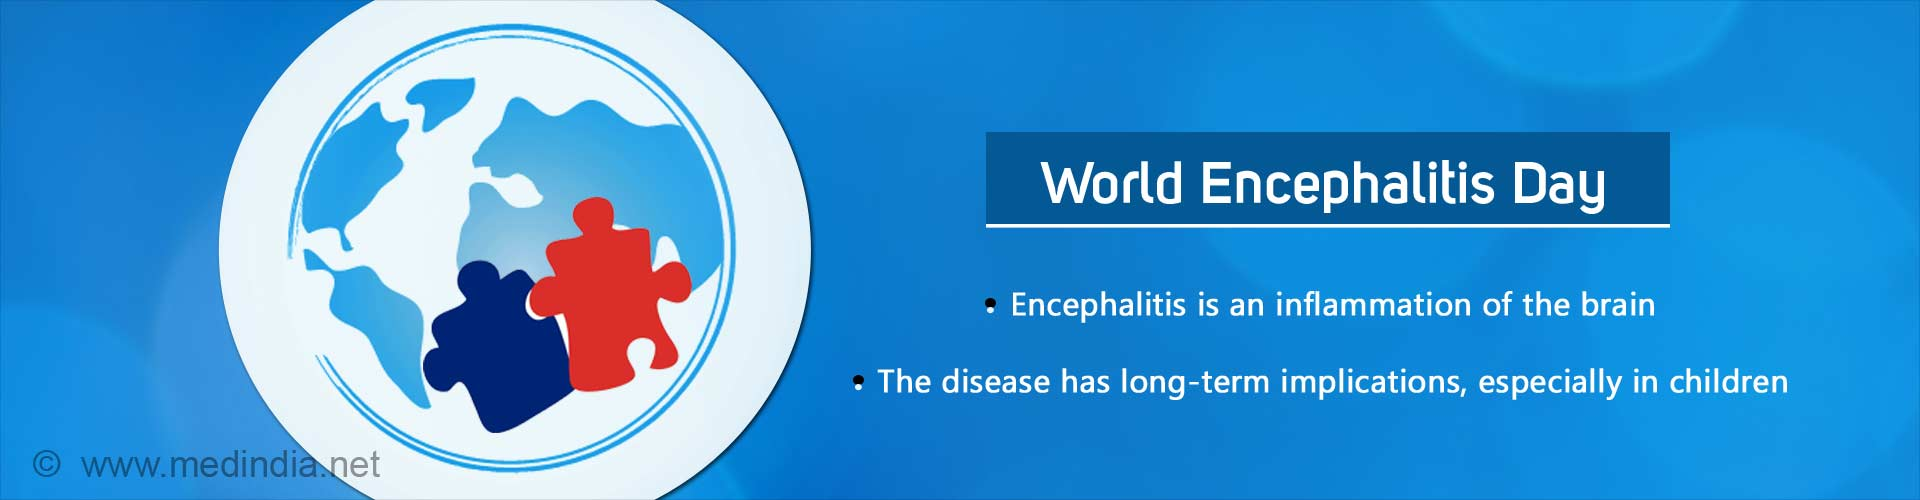 World Encephalitis Day 2018